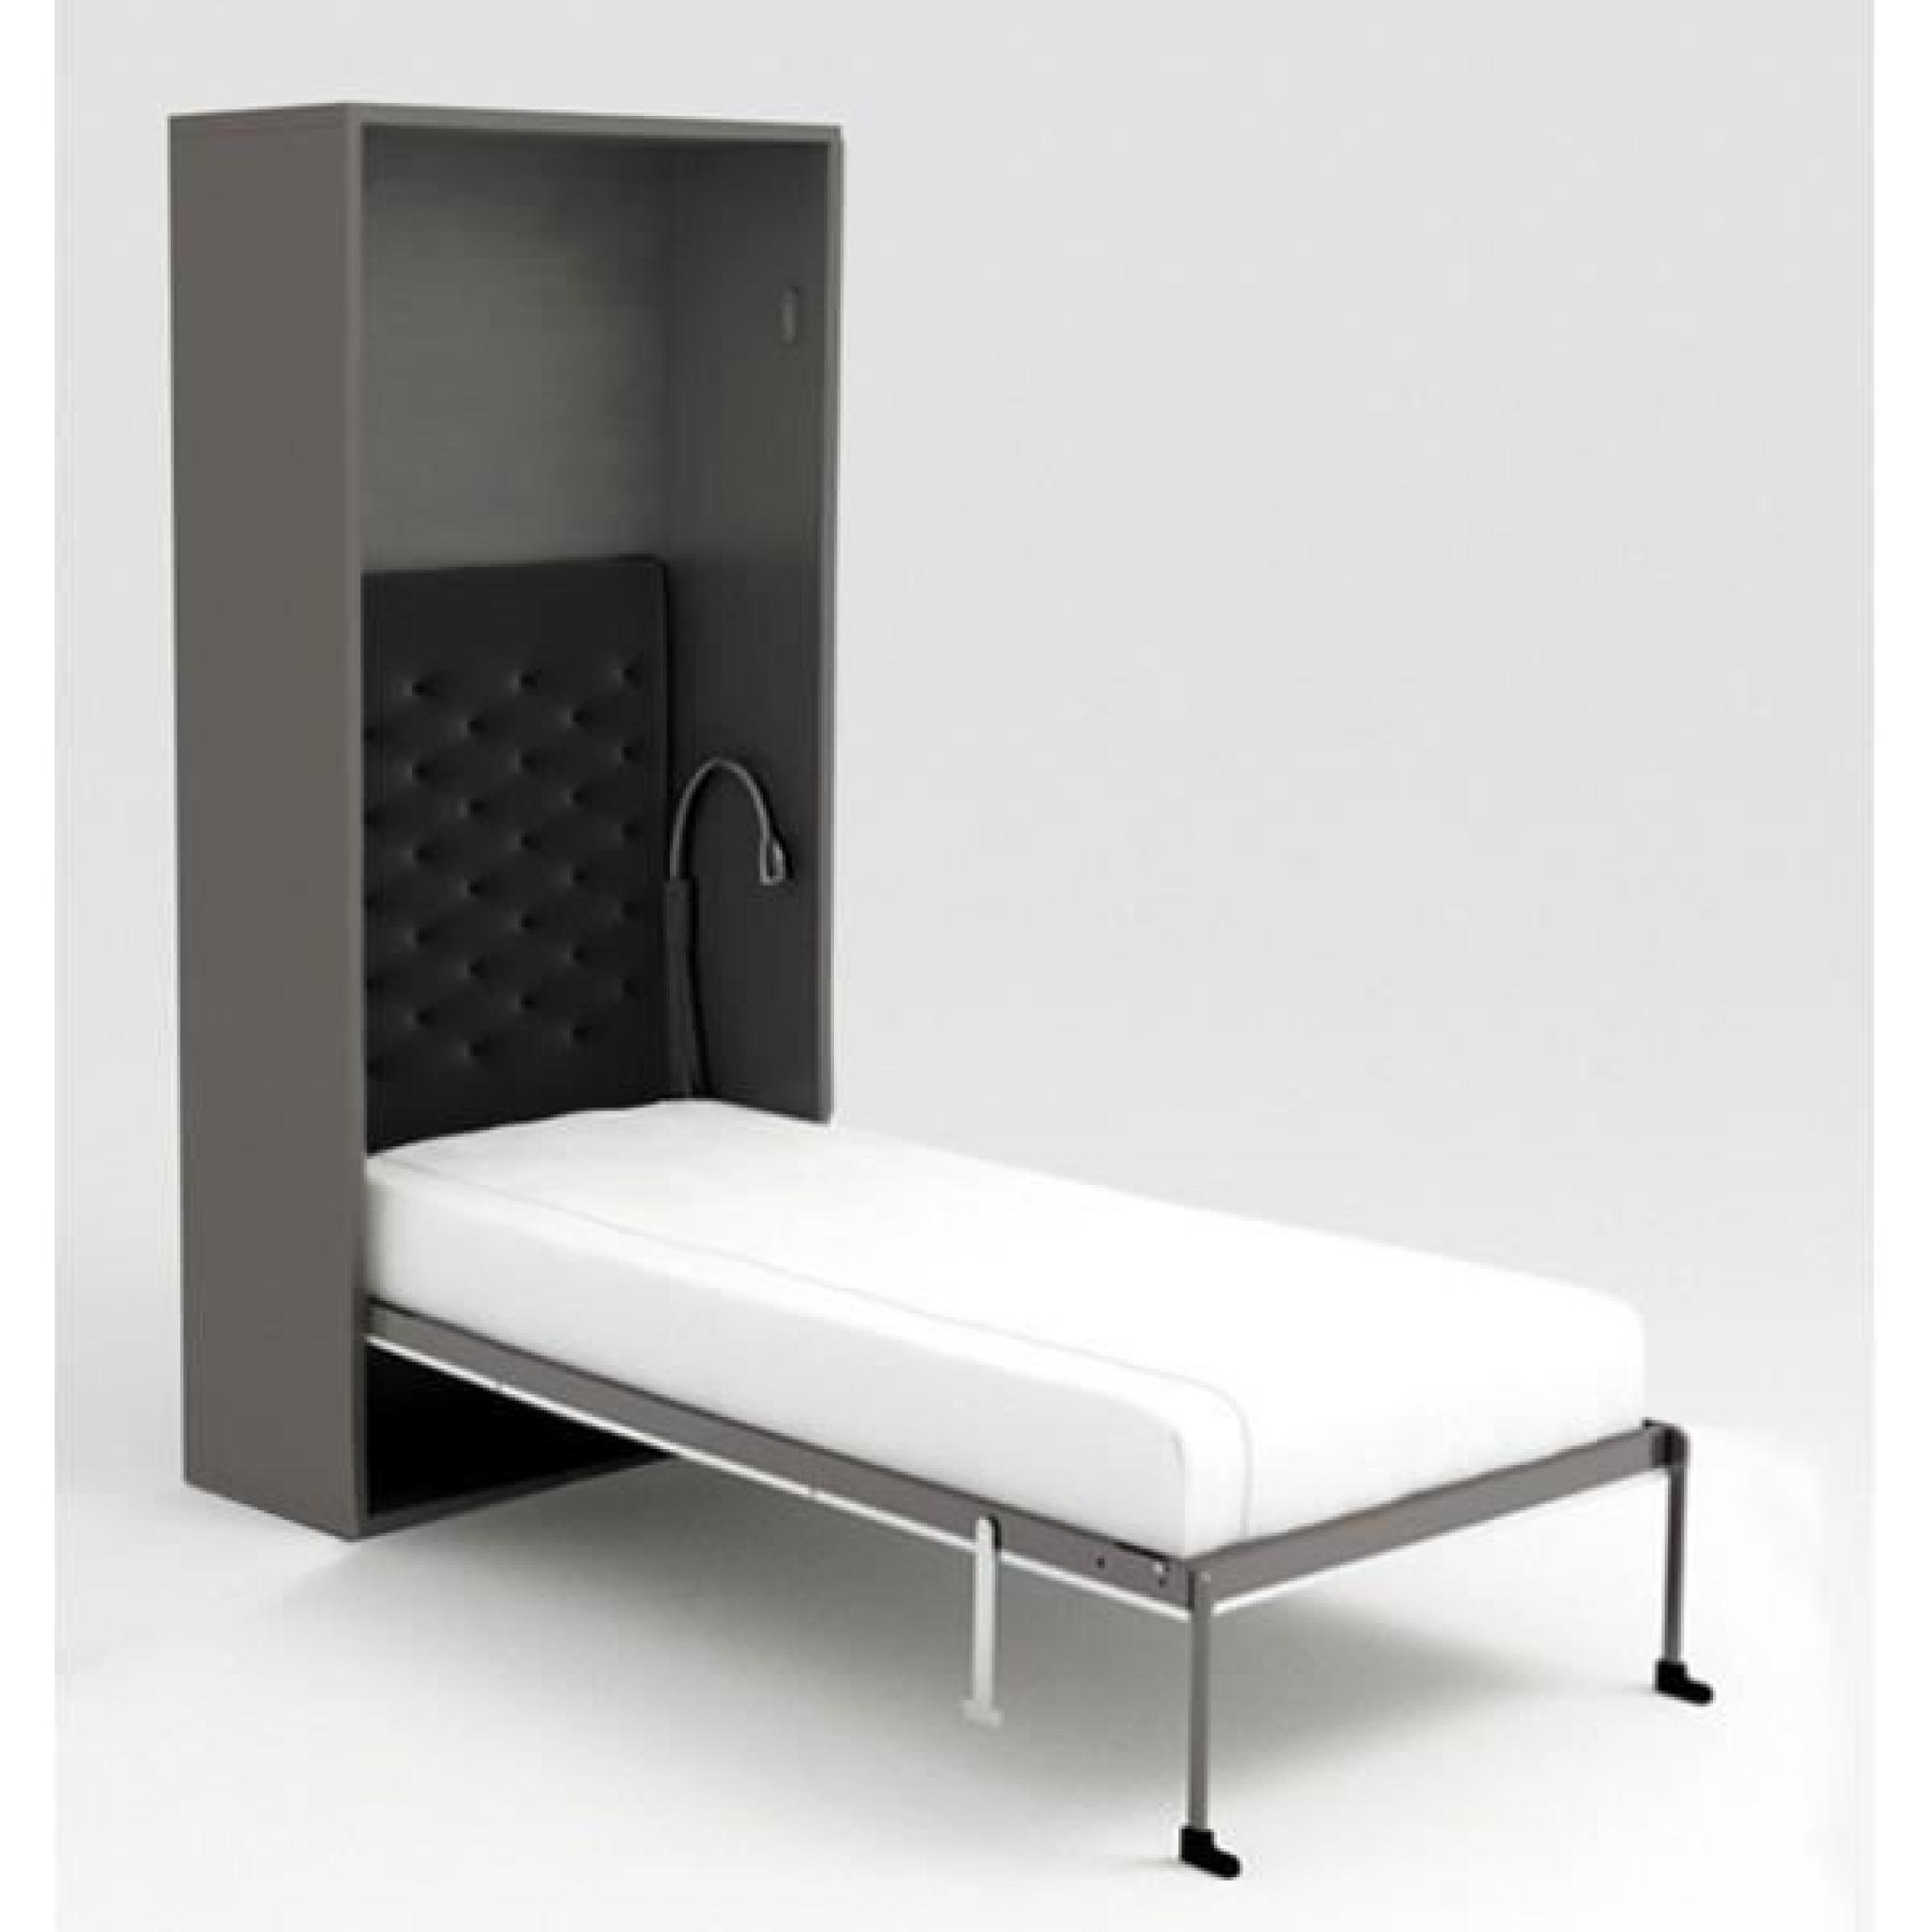 lit escamotable 1 personne pas cher sofag. Black Bedroom Furniture Sets. Home Design Ideas